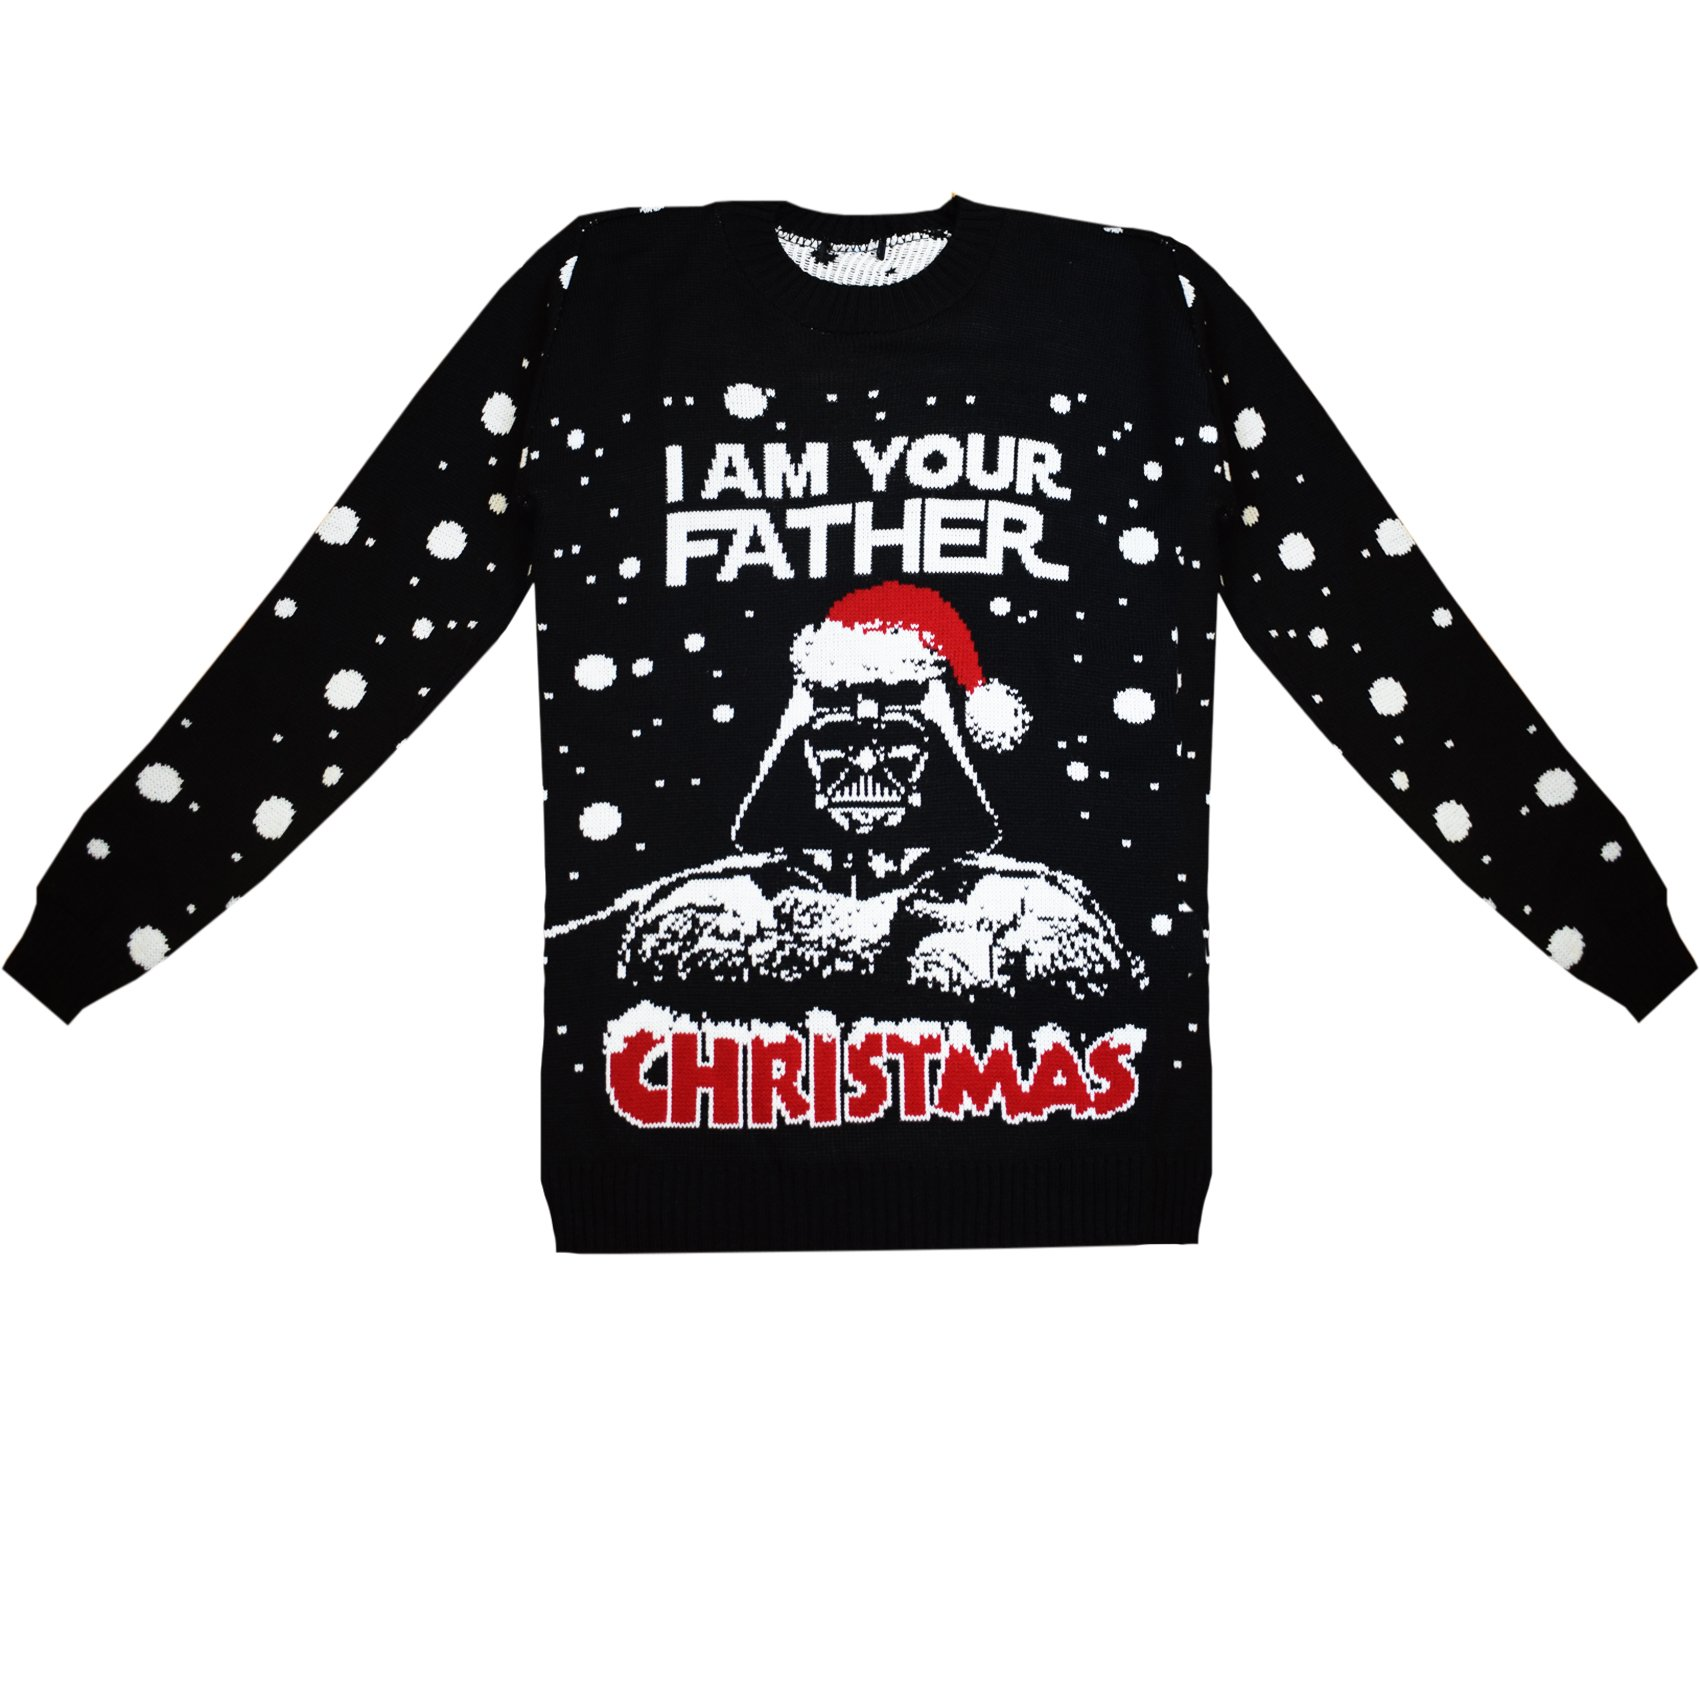 I Am Your Father Christmas Ladies Mens New Season Star Wars Darth